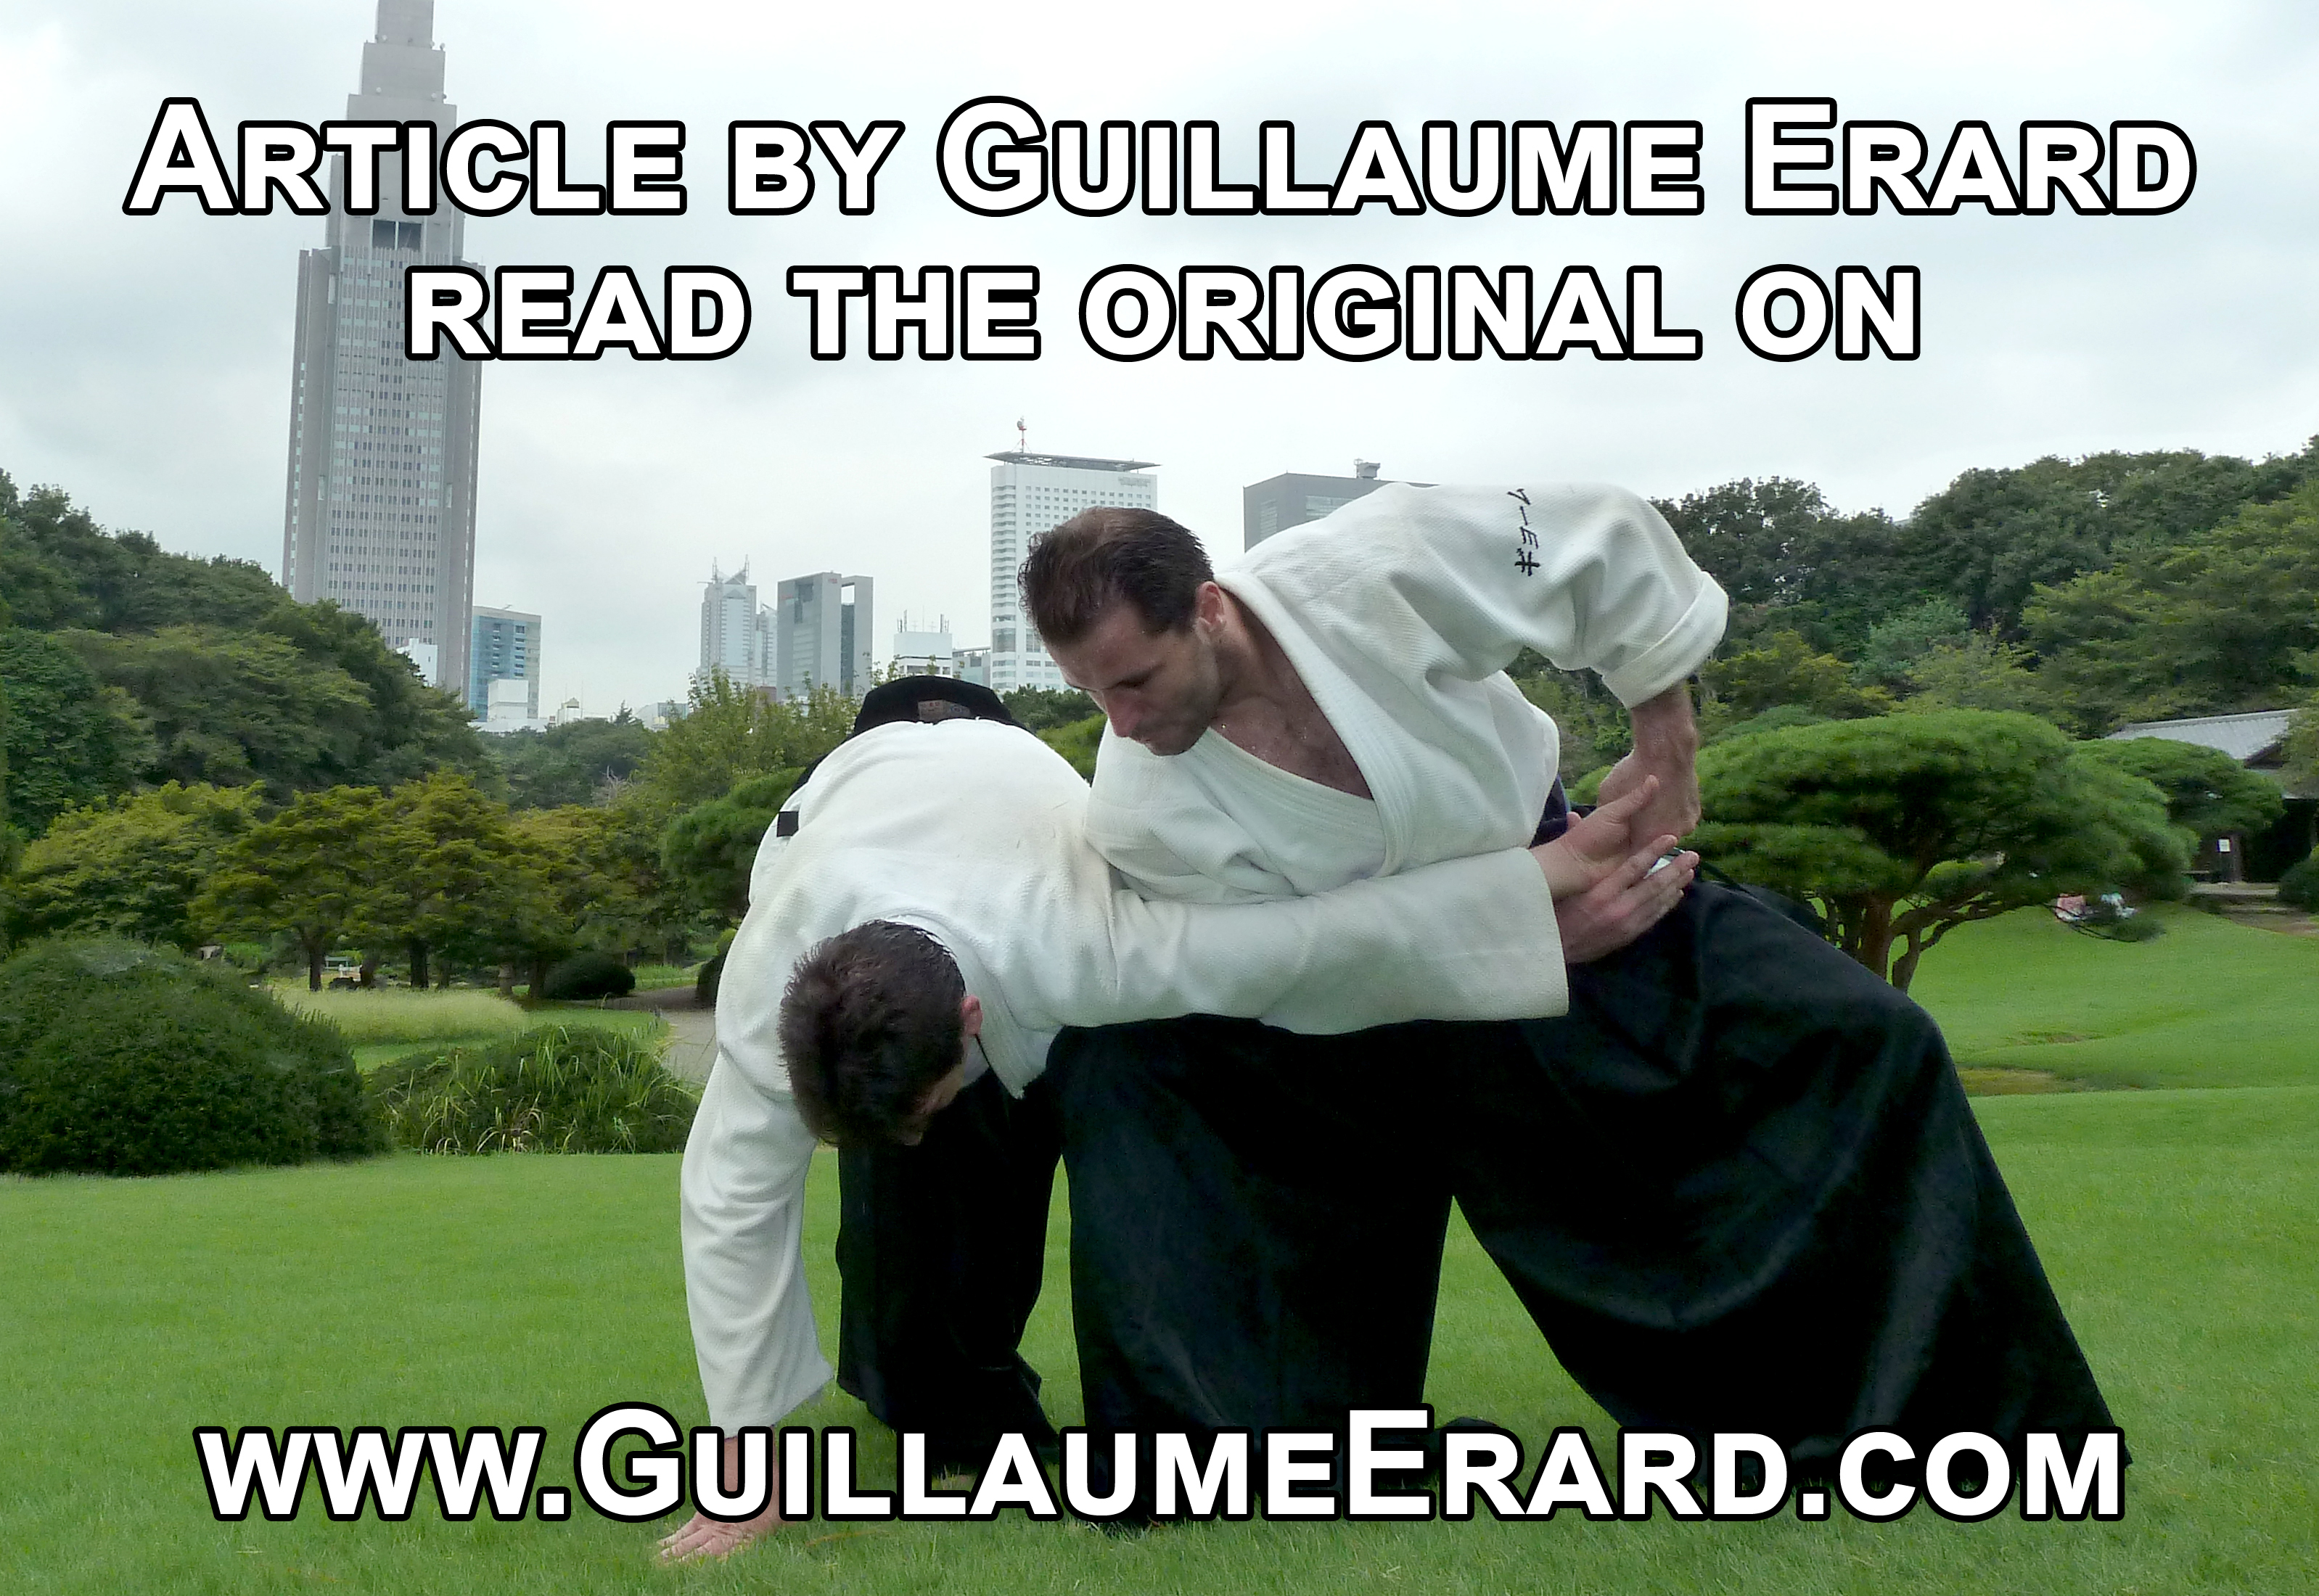 Guillaume Erard - 5th Dan Aikikai